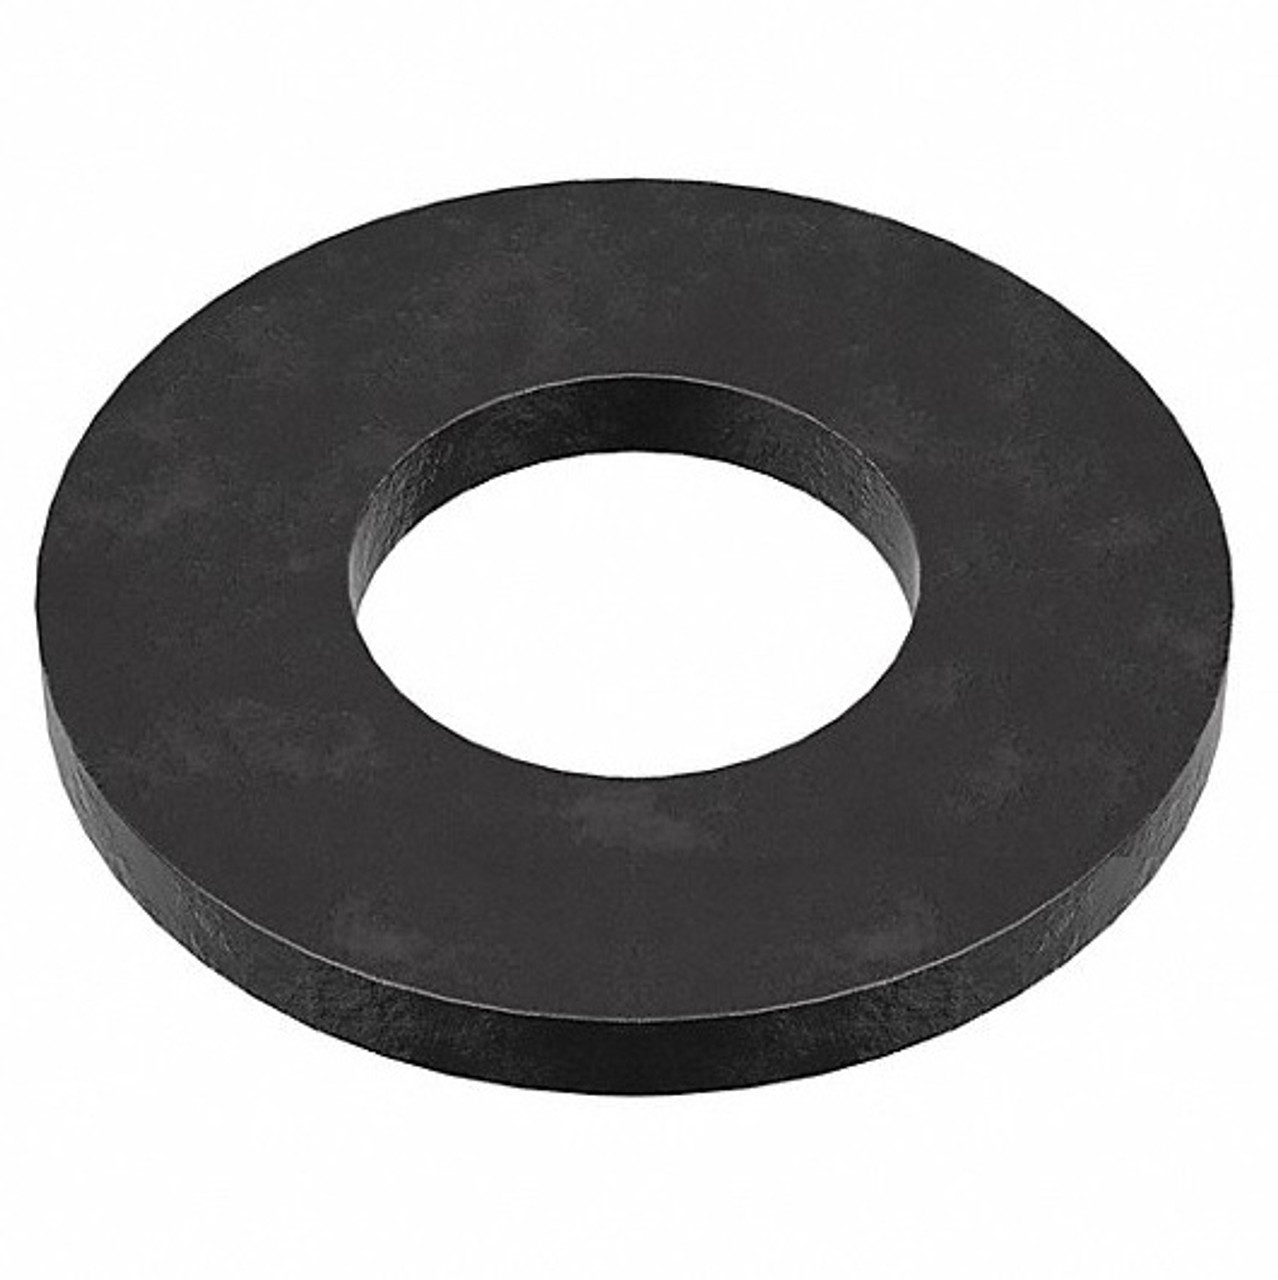 Large Silicone Gasket Washer for UHF and Type N Bulkhead Connectors